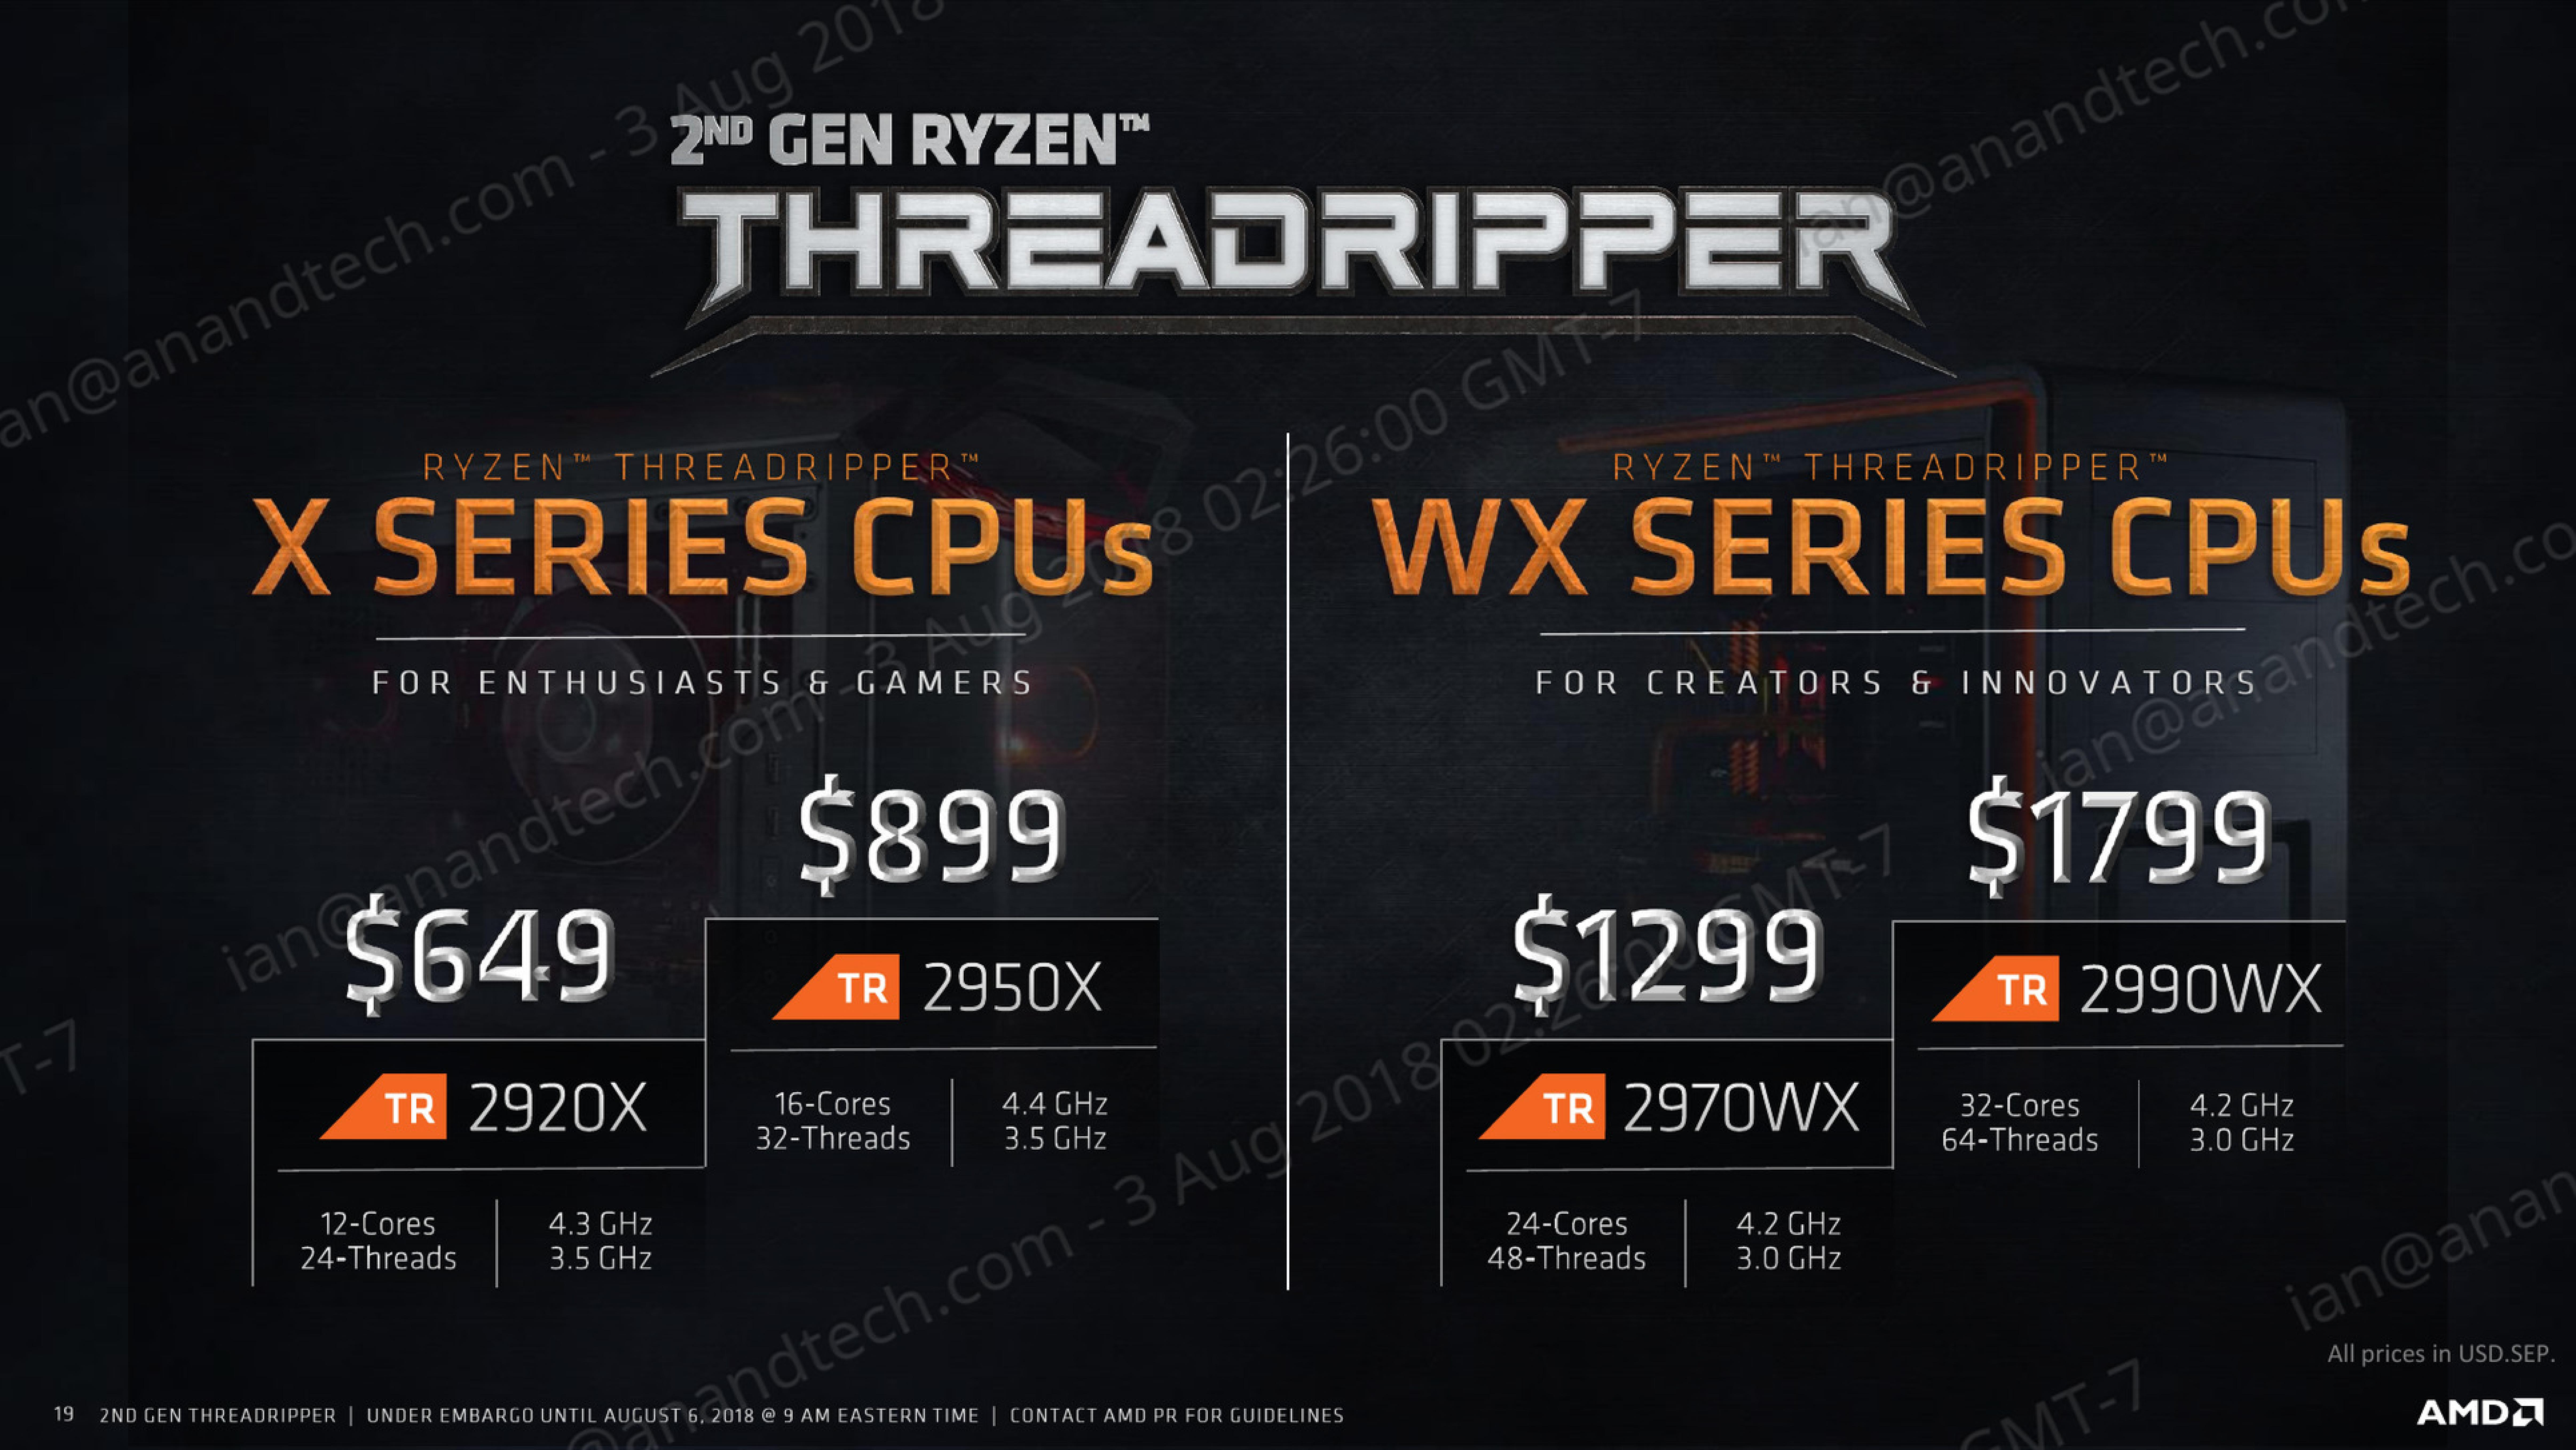 https://images.anandtech.com/doci/13123/Jim%20Anderson_2nd%20Gen%20Threadripper%20Tech%20Day-page-019.jpg